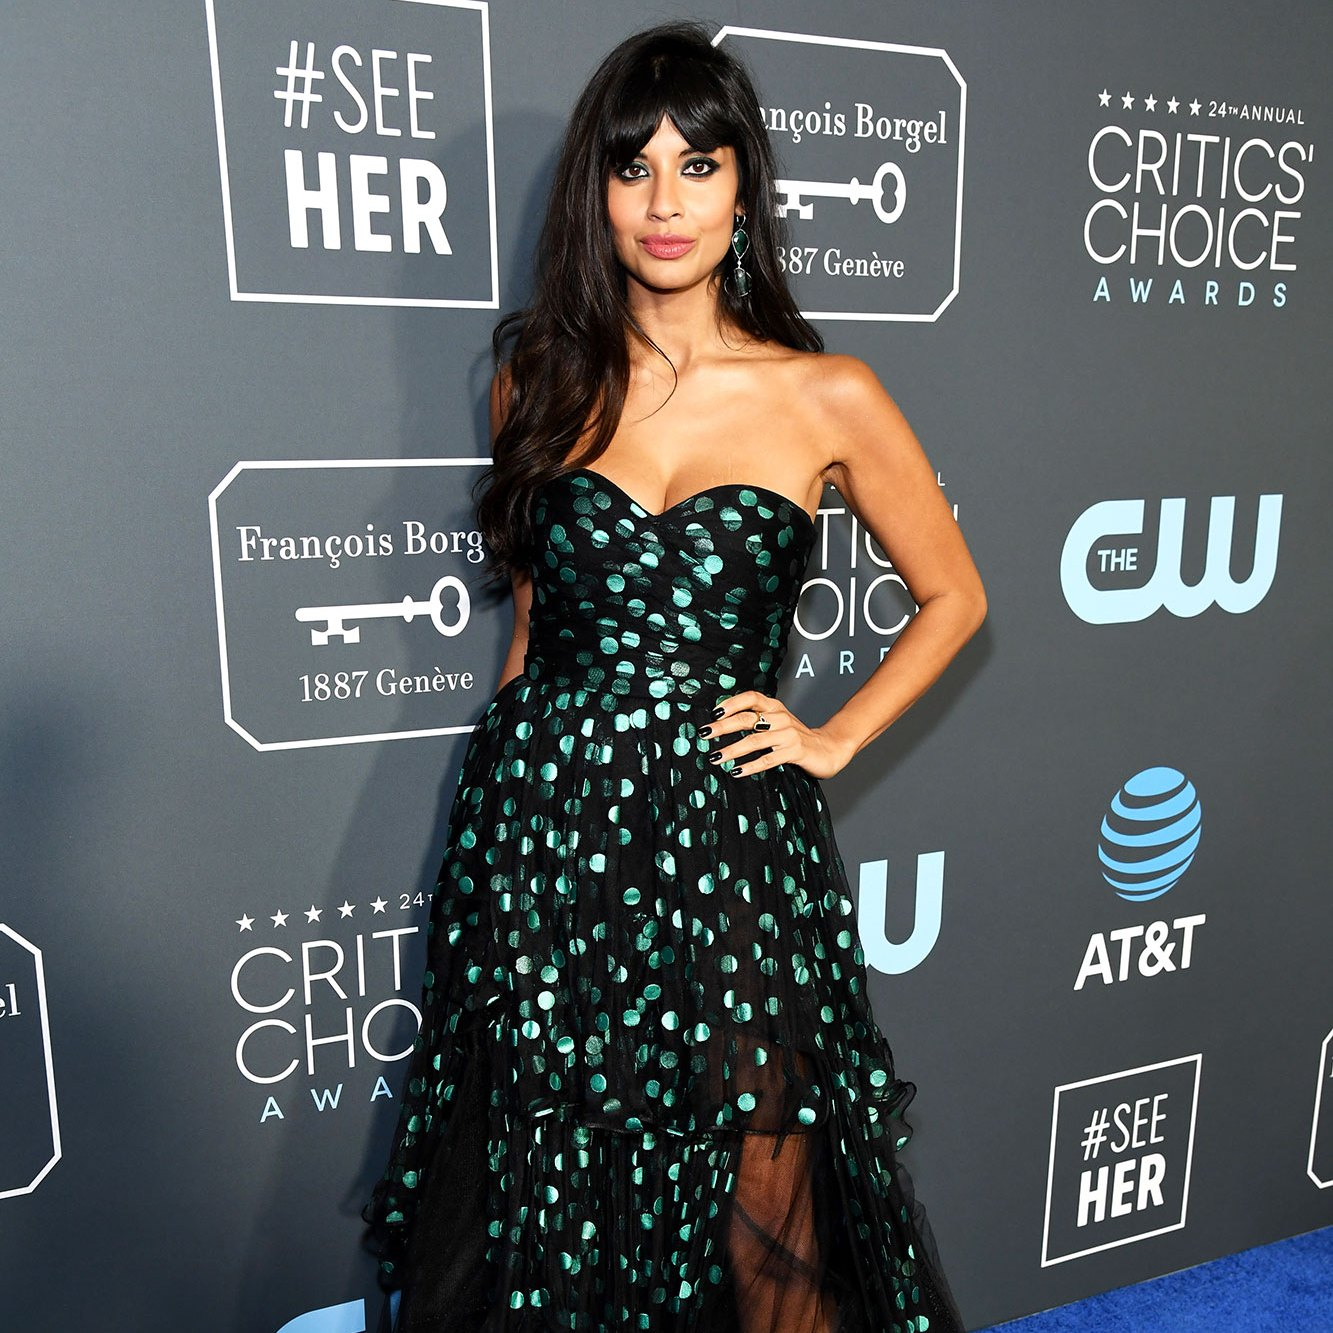 Jameela Jamil critics choice awards 2019 combat boots